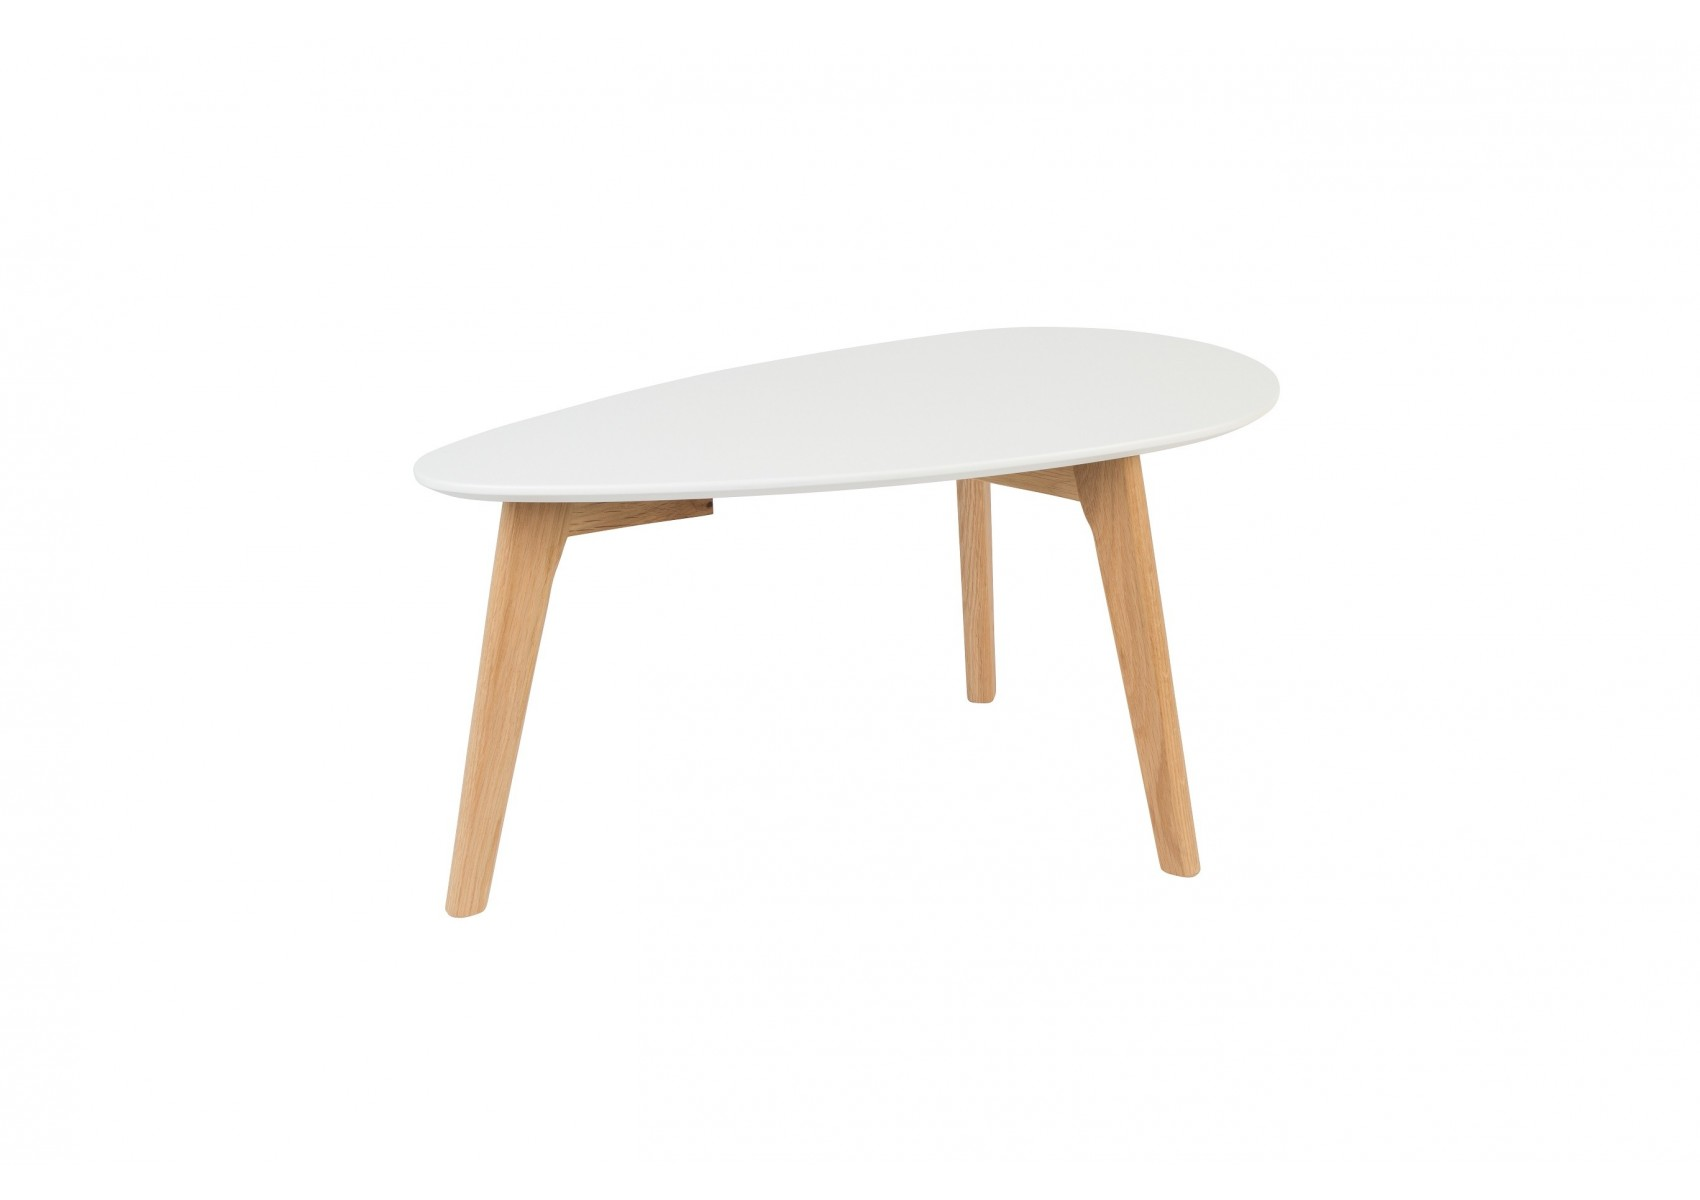 Tables basse scandinave drop laqu e blanche Table basse scandinave laquee